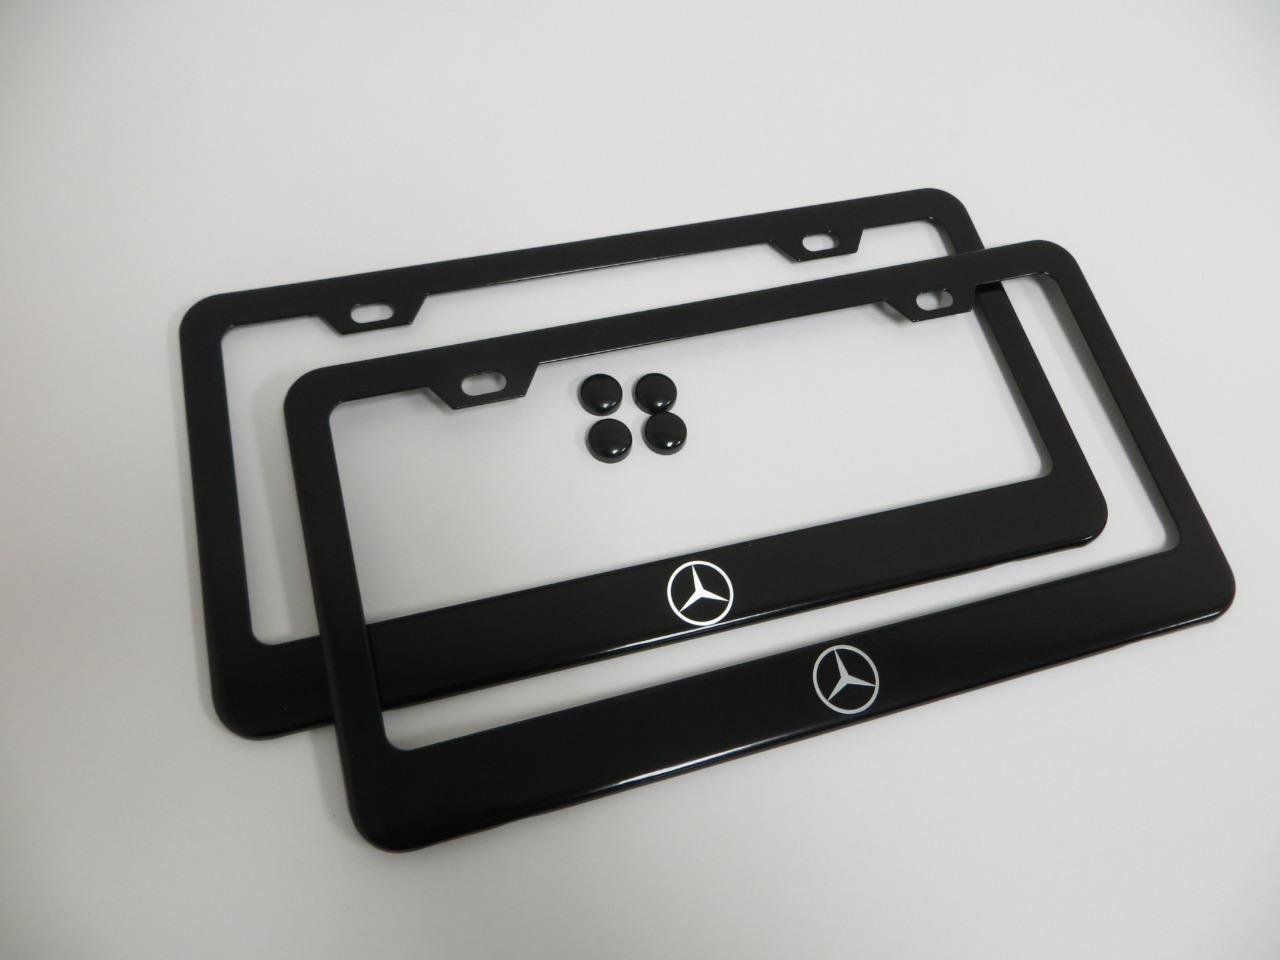 2 Pieces Mercedes-Benz Logo Black Metal License Plate Frame with Screw Cap Covers Deepro International Company Limited